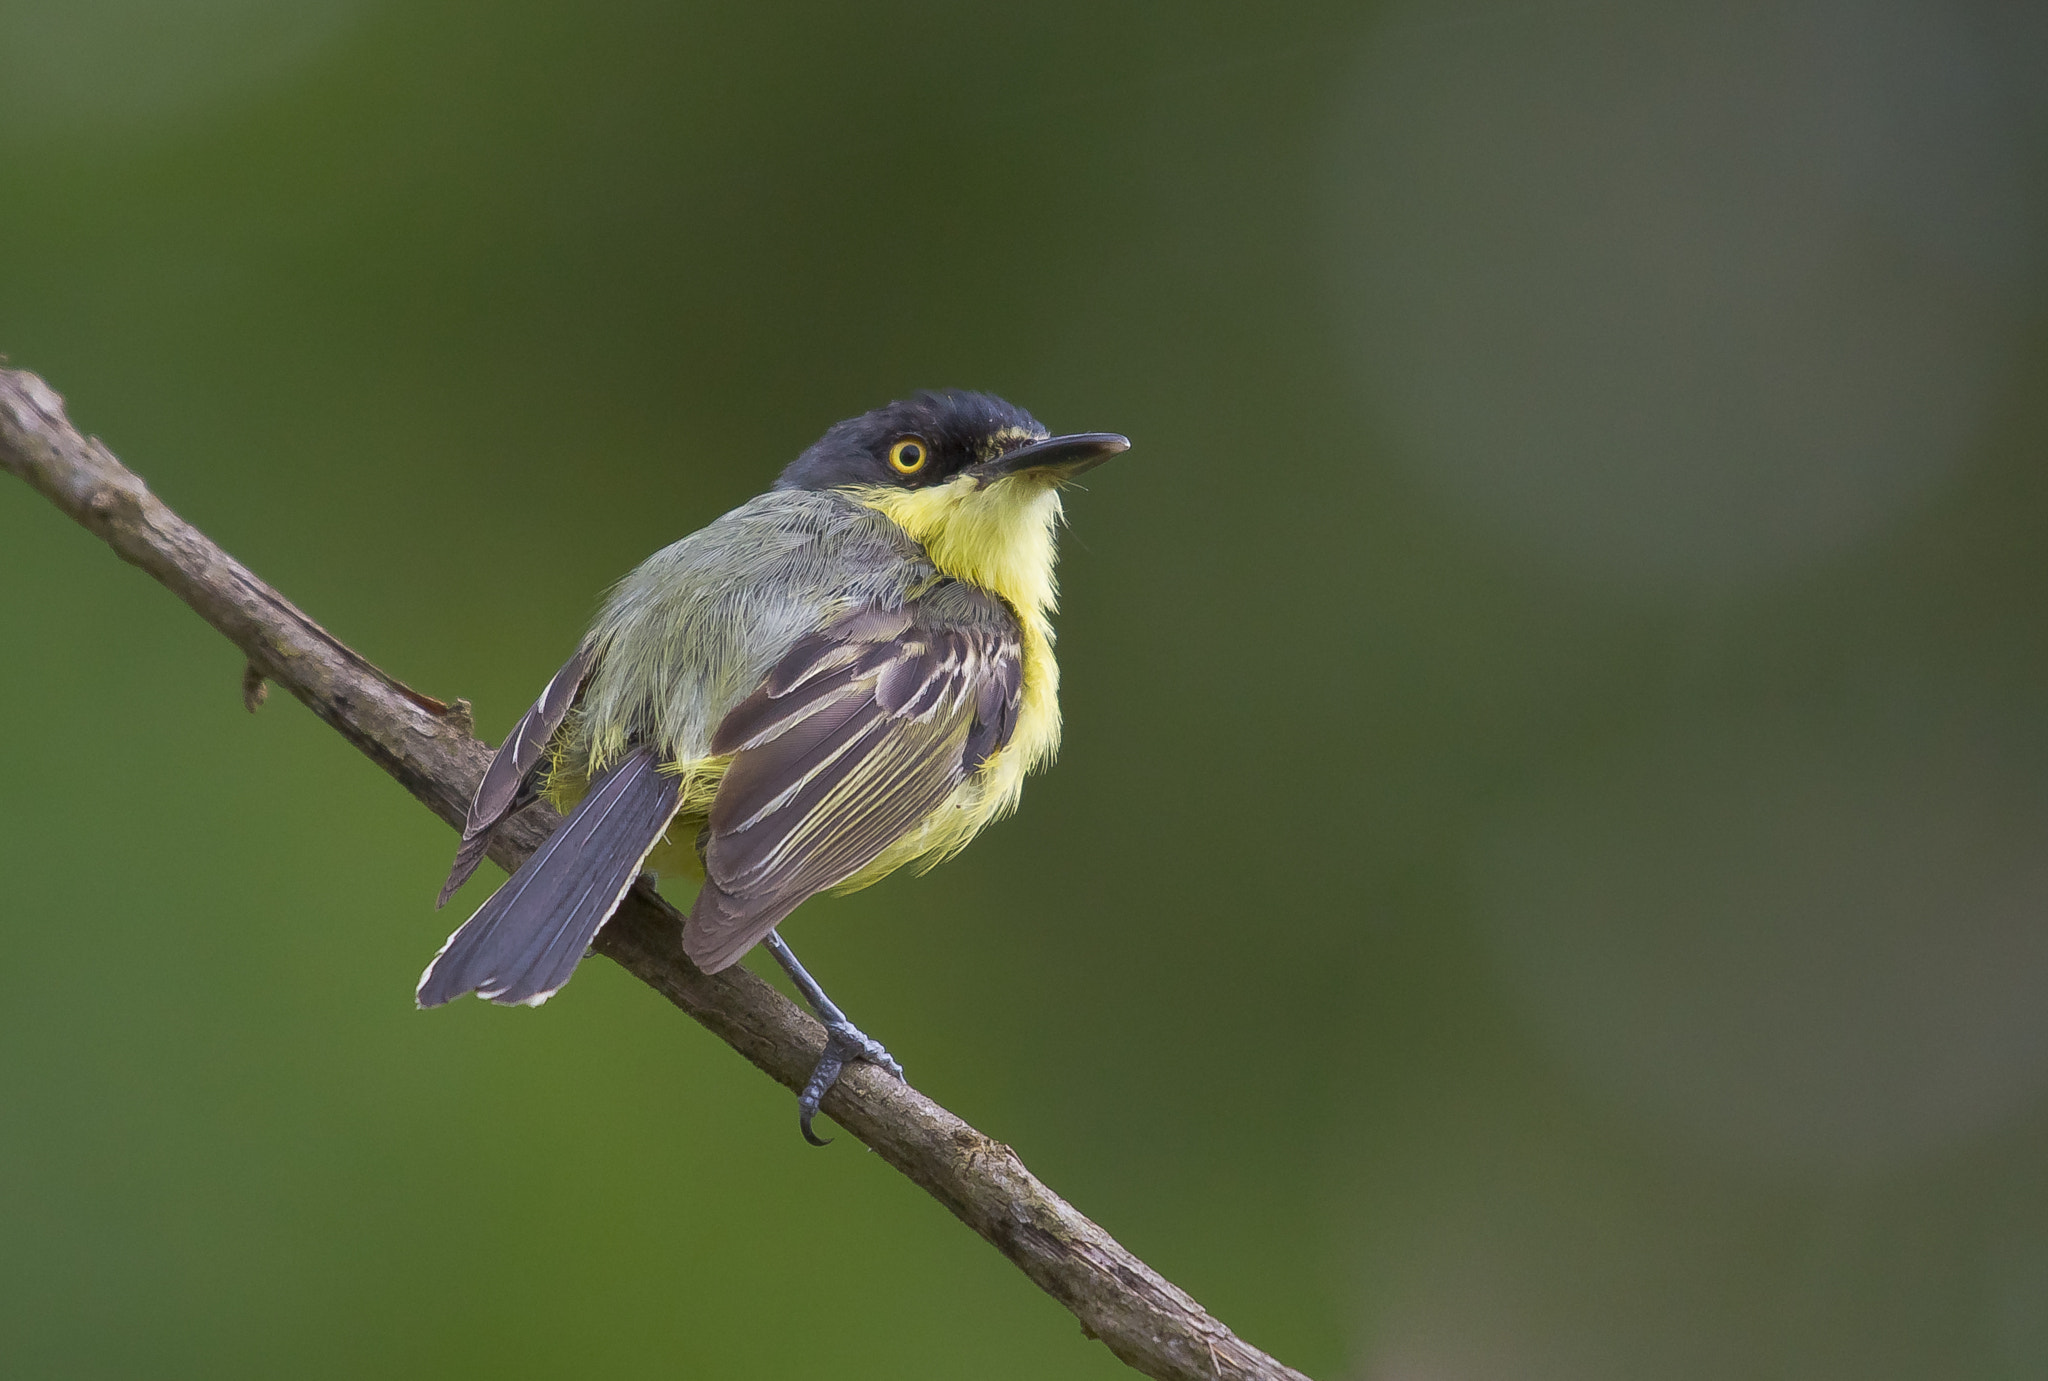 Photograph Common Tody-Flycatcher (Todirostrum cinereum) by Bertrando Campos on 500px